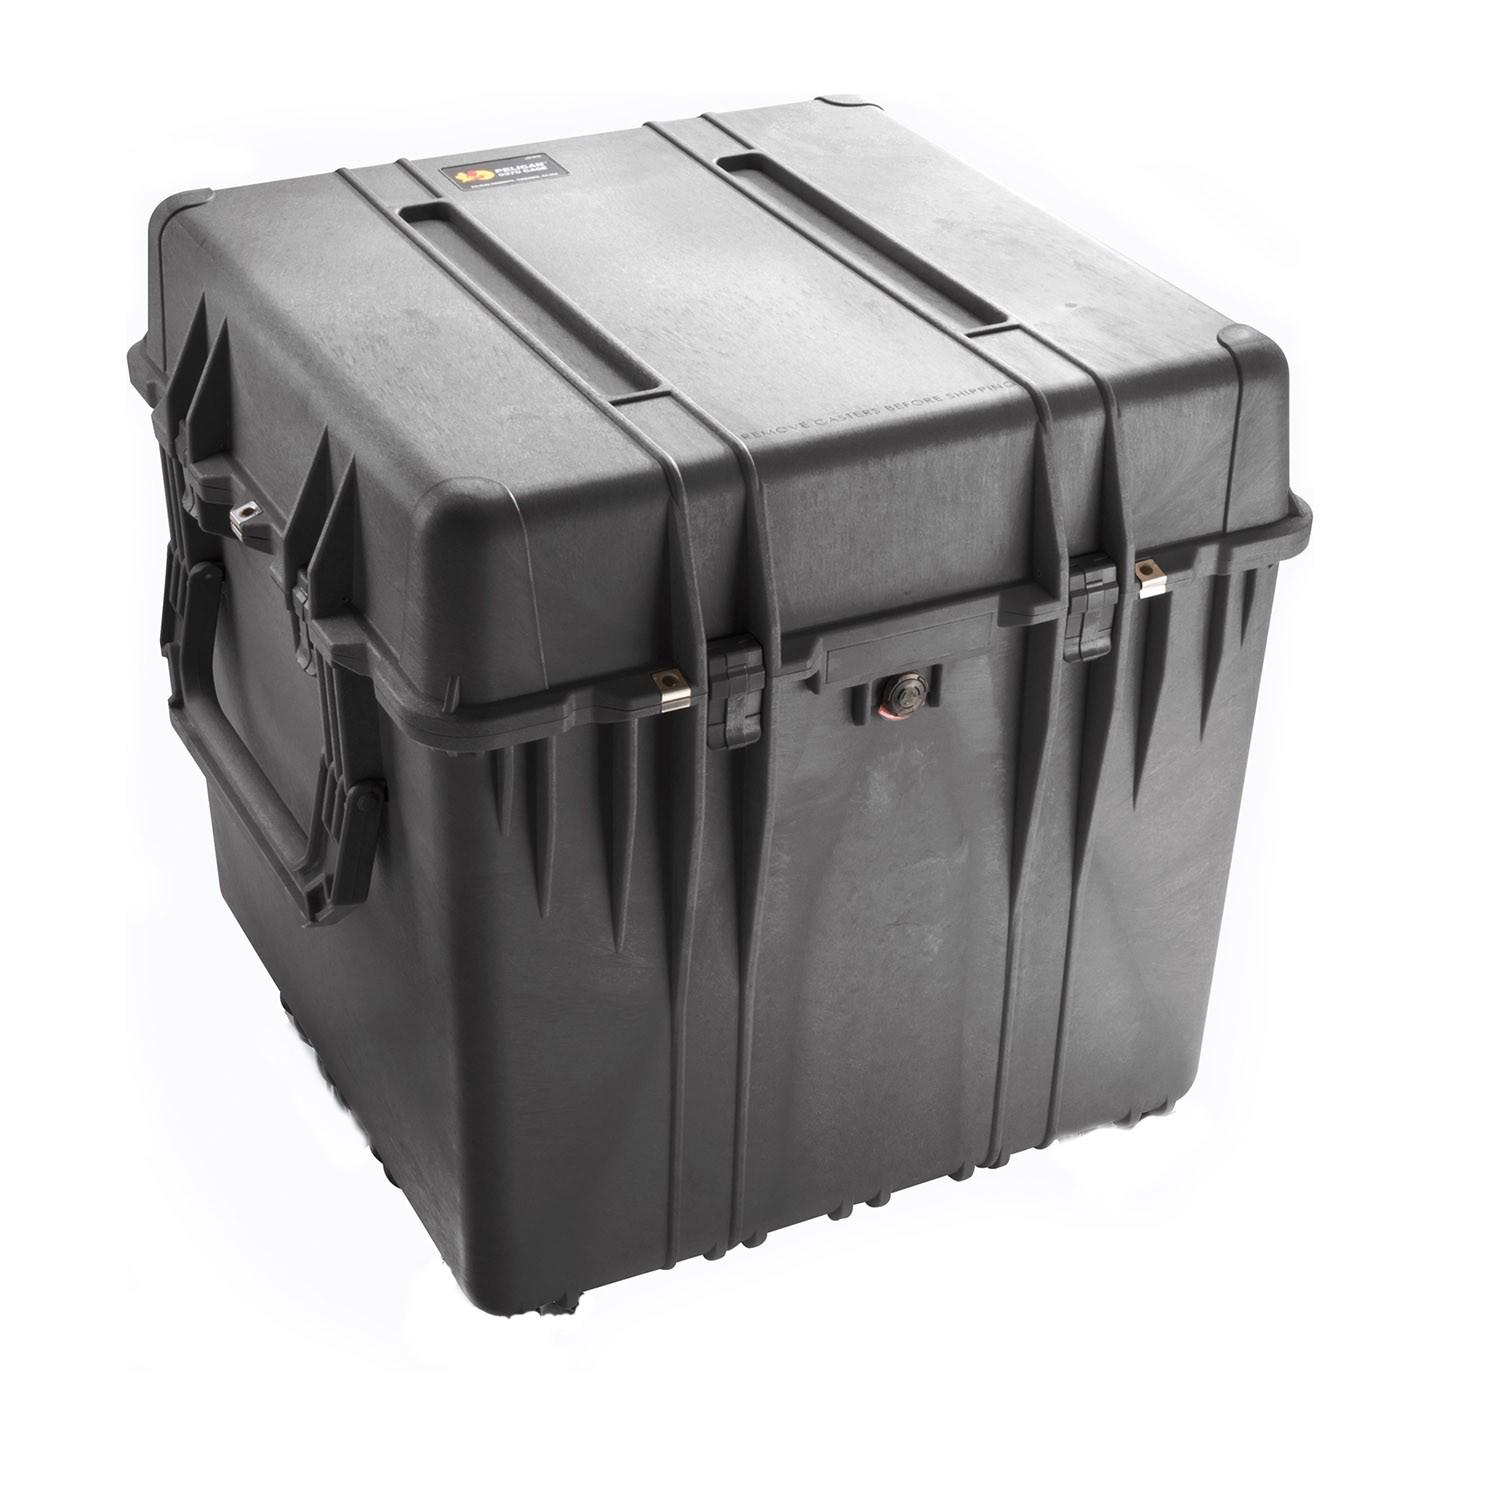 Peli 0370 Cube Case with Cubed Foam